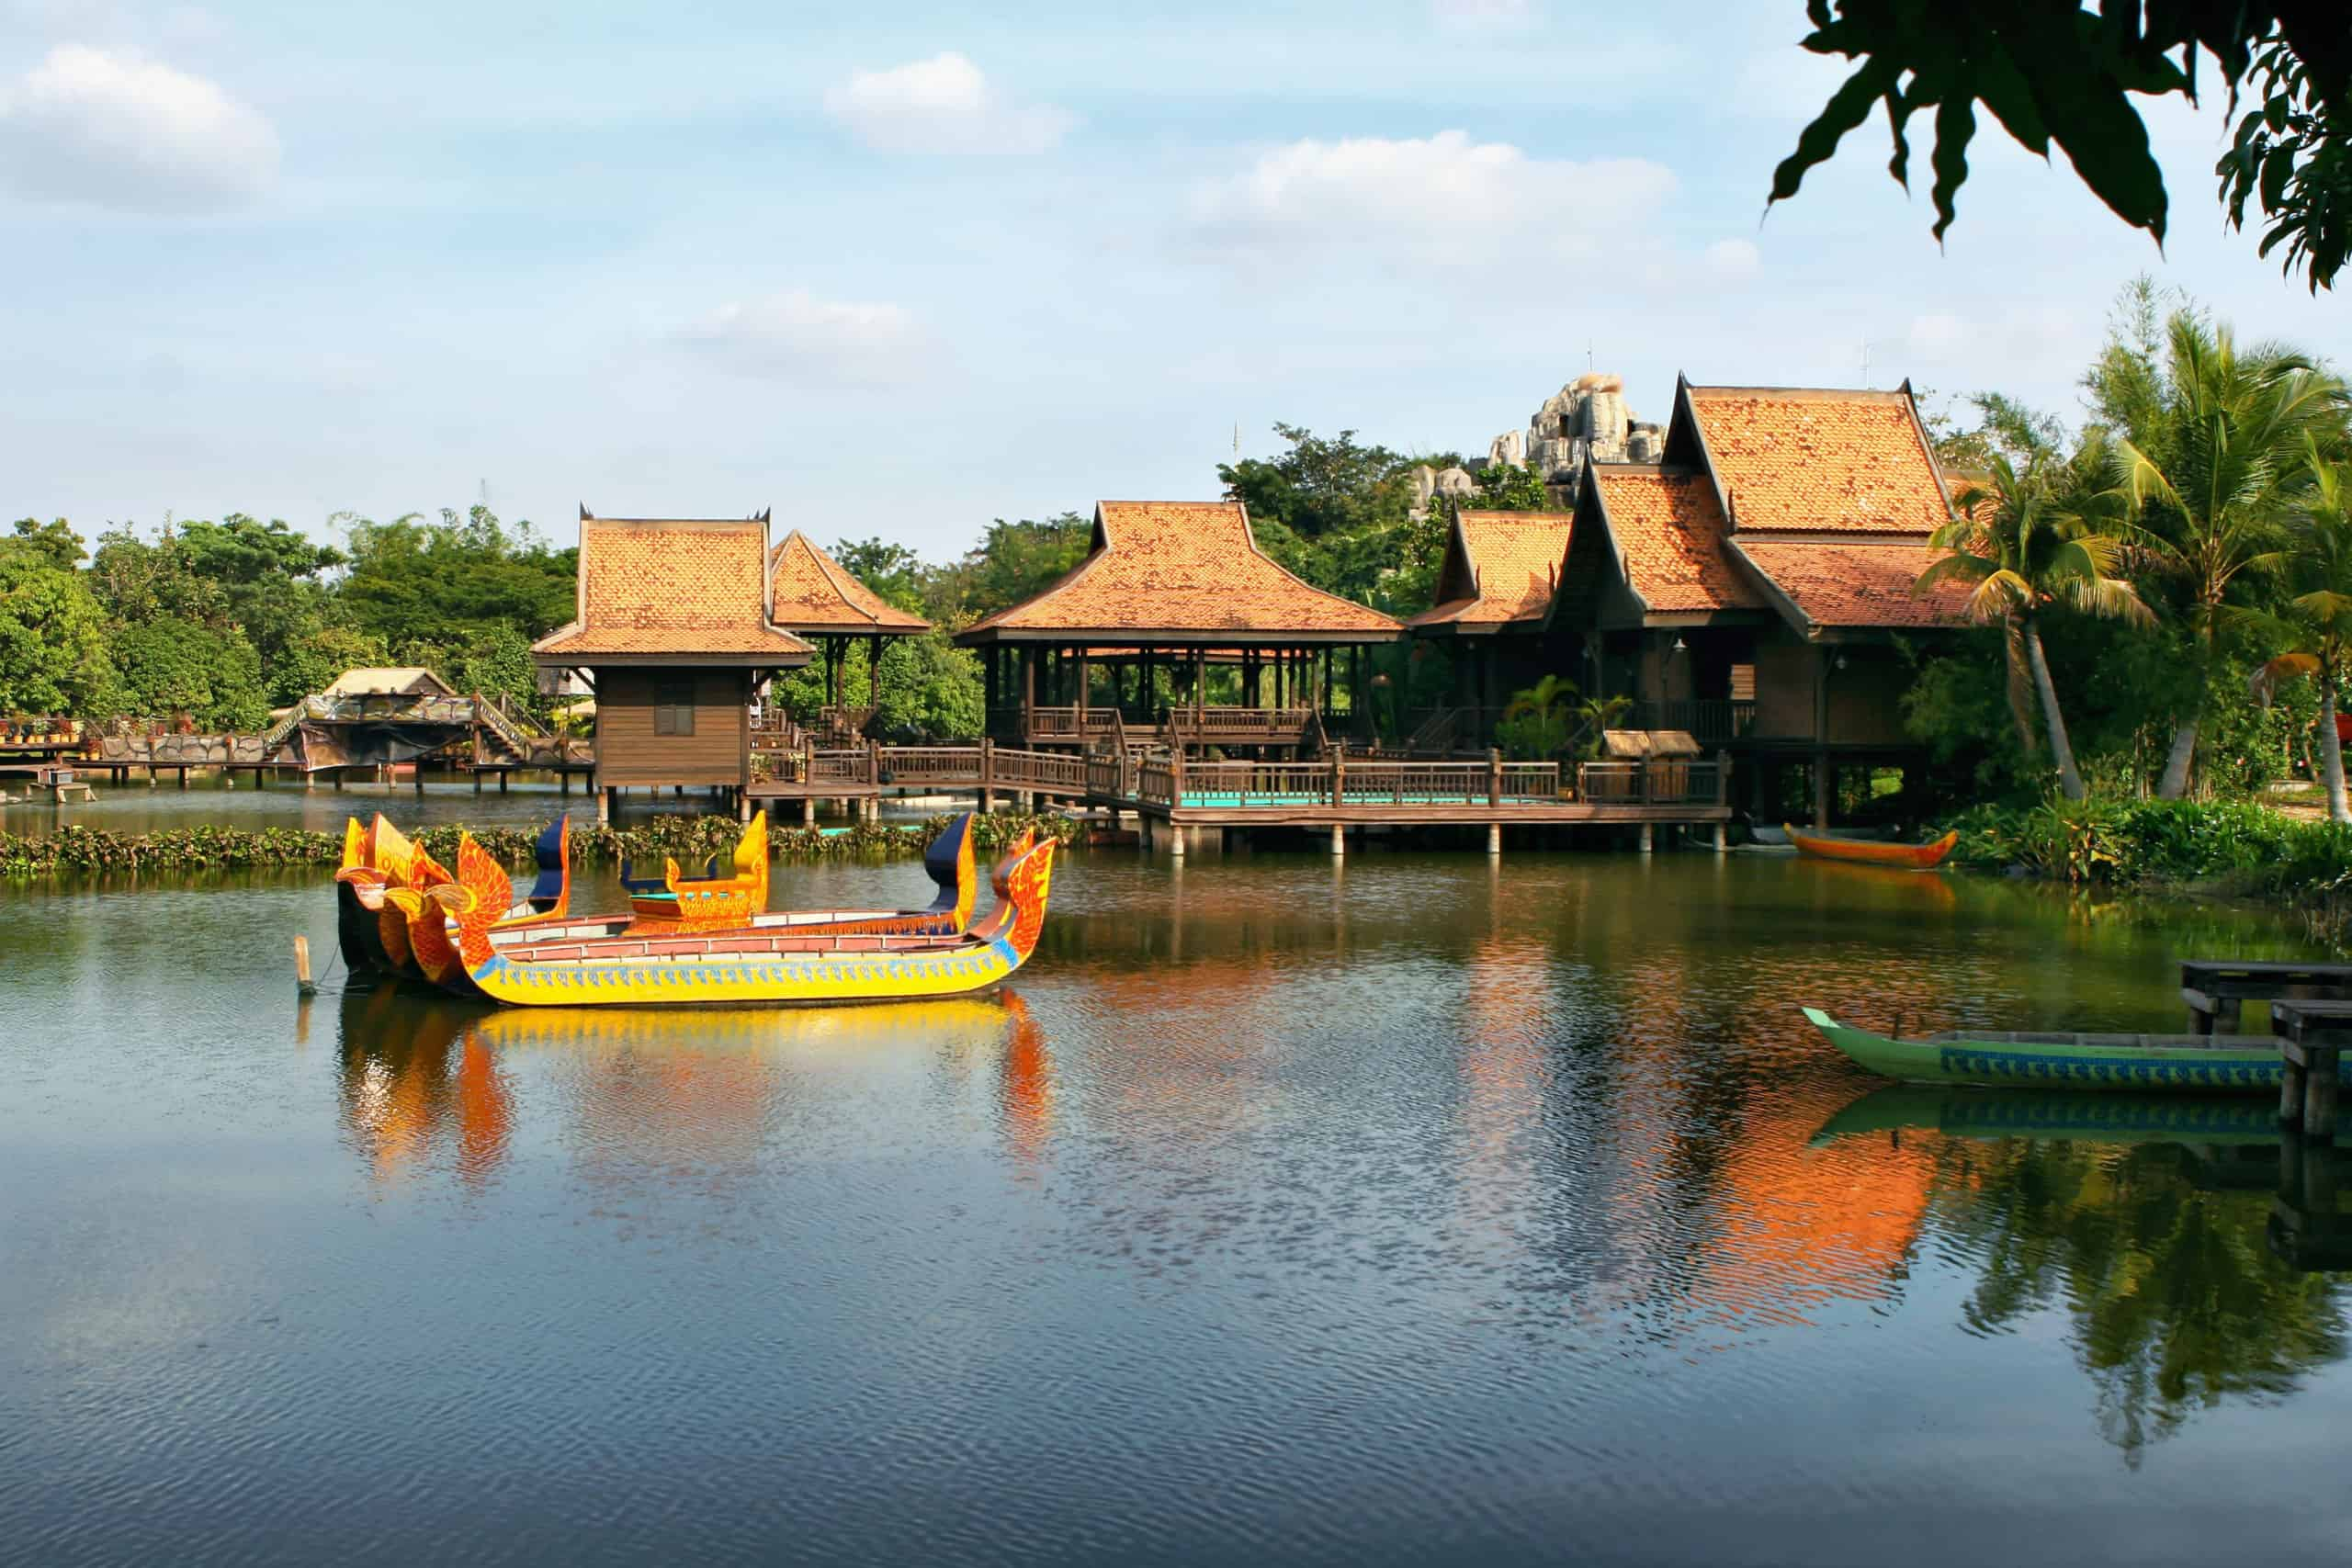 Cultivated park with lake and ancient  boats. Houses on stilts. Hotel in Siem reap. Cambodia.